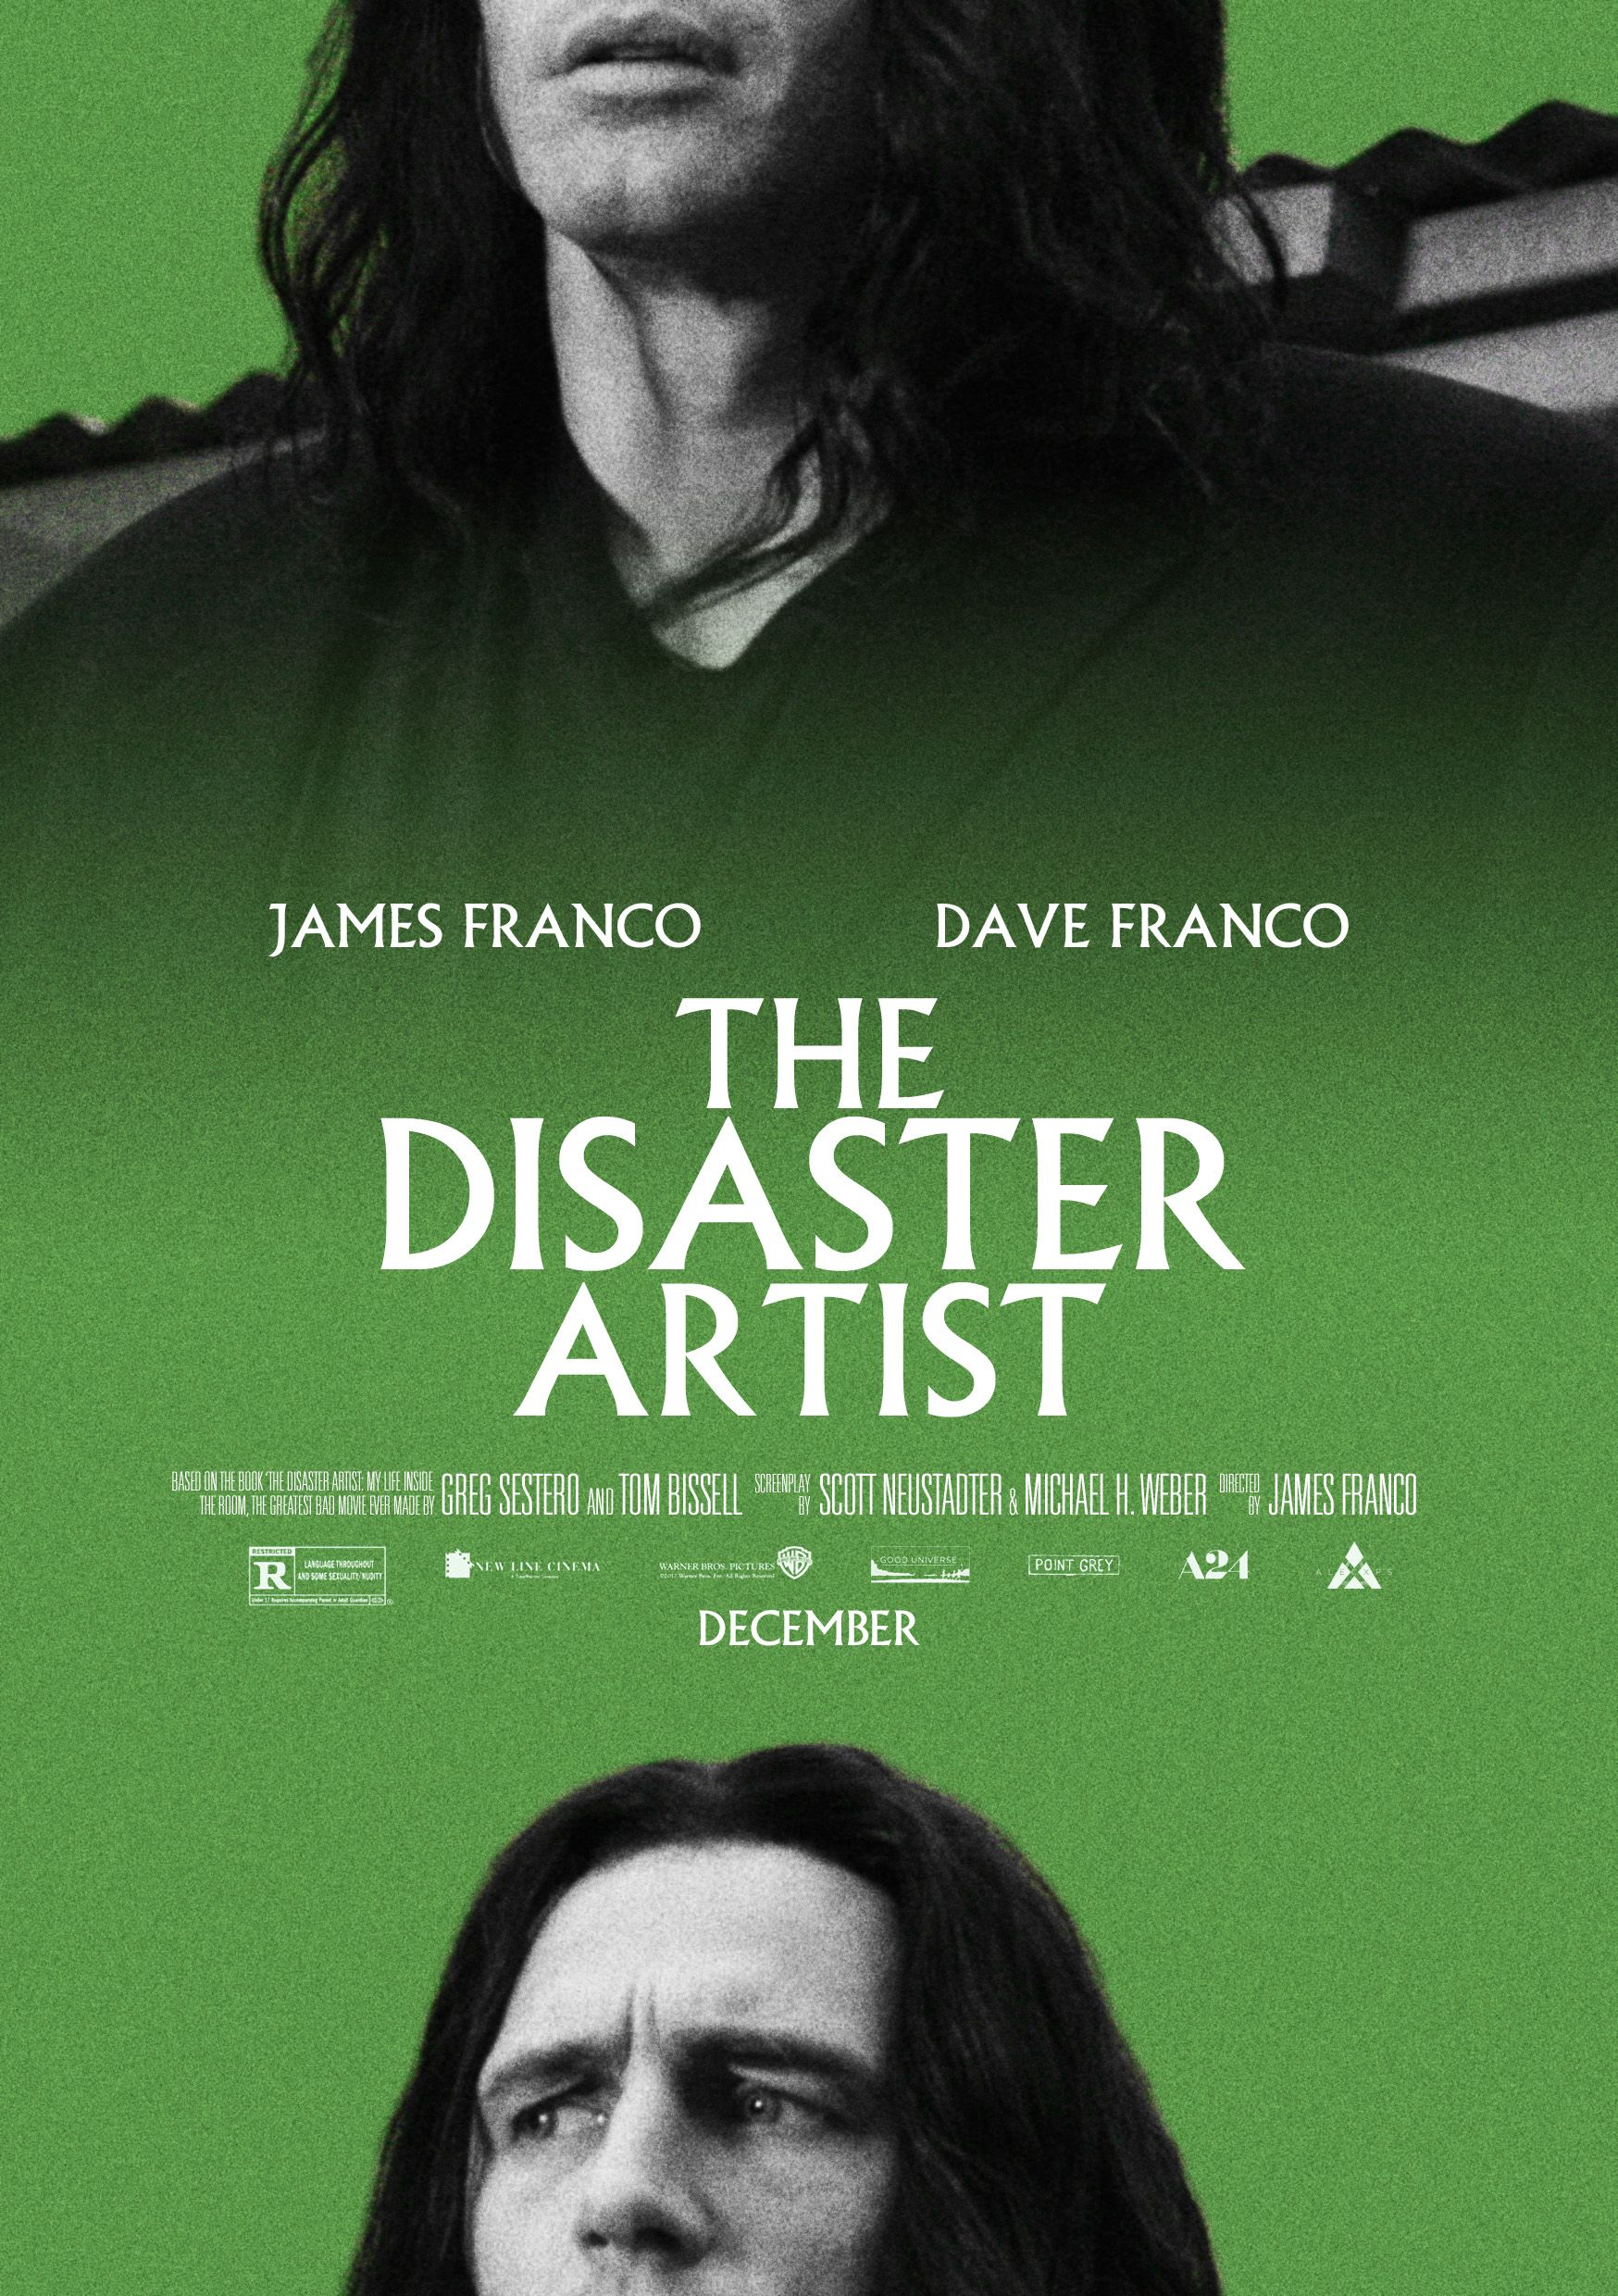 The Disaster Artist Poster by Alecxps Iconic movies